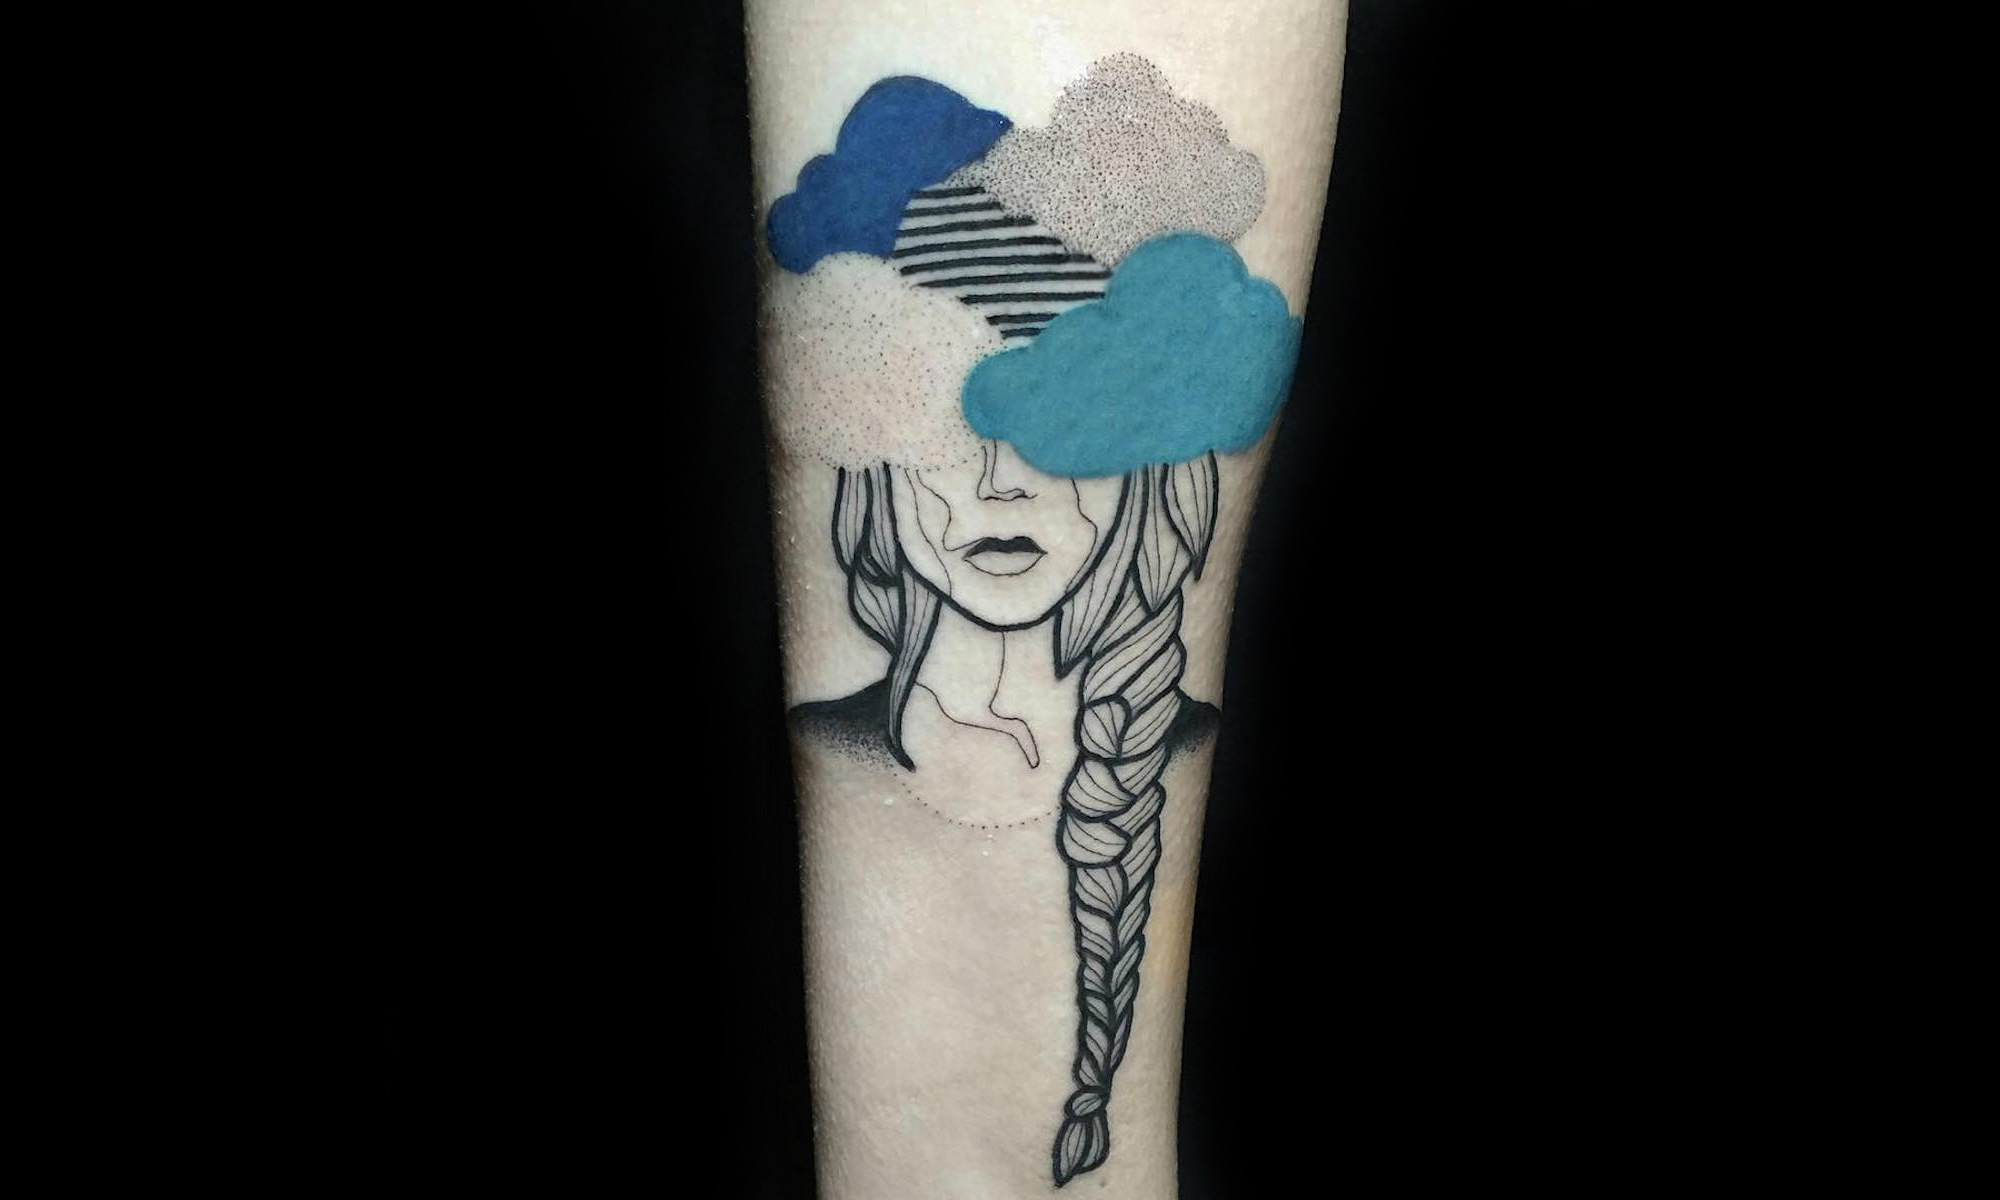 Head in the clouds tattoo by Kat Alden